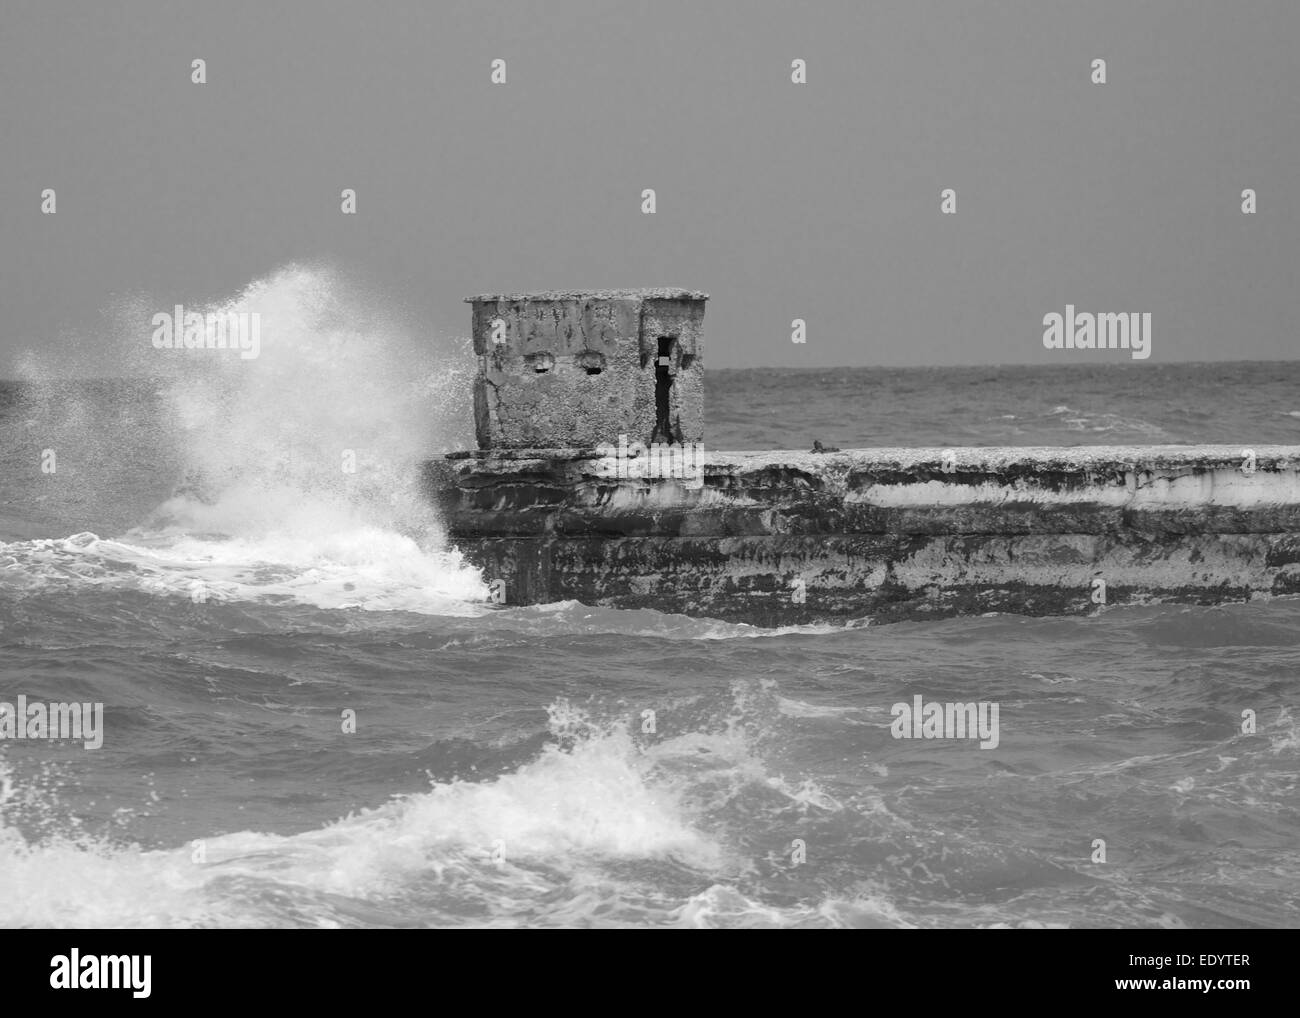 Windy day at the old port in Tel Aviv - Stock Image